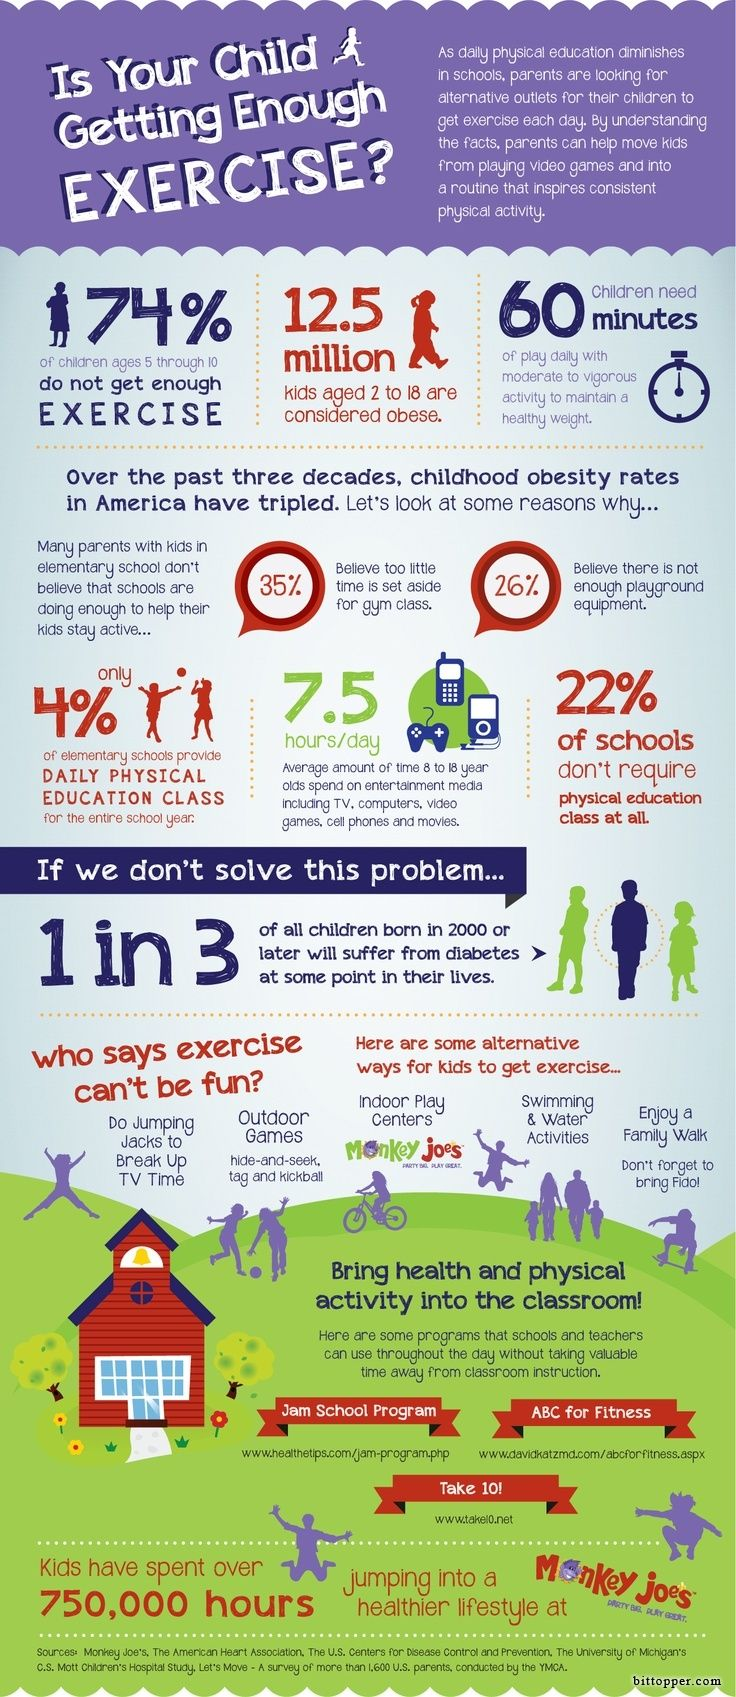 #Health #Infographics - Is Your Child Getting Enough Exercise? #Infografia via www.bittopper.com/post.php?id=10794333435288101fc13c93.78743624